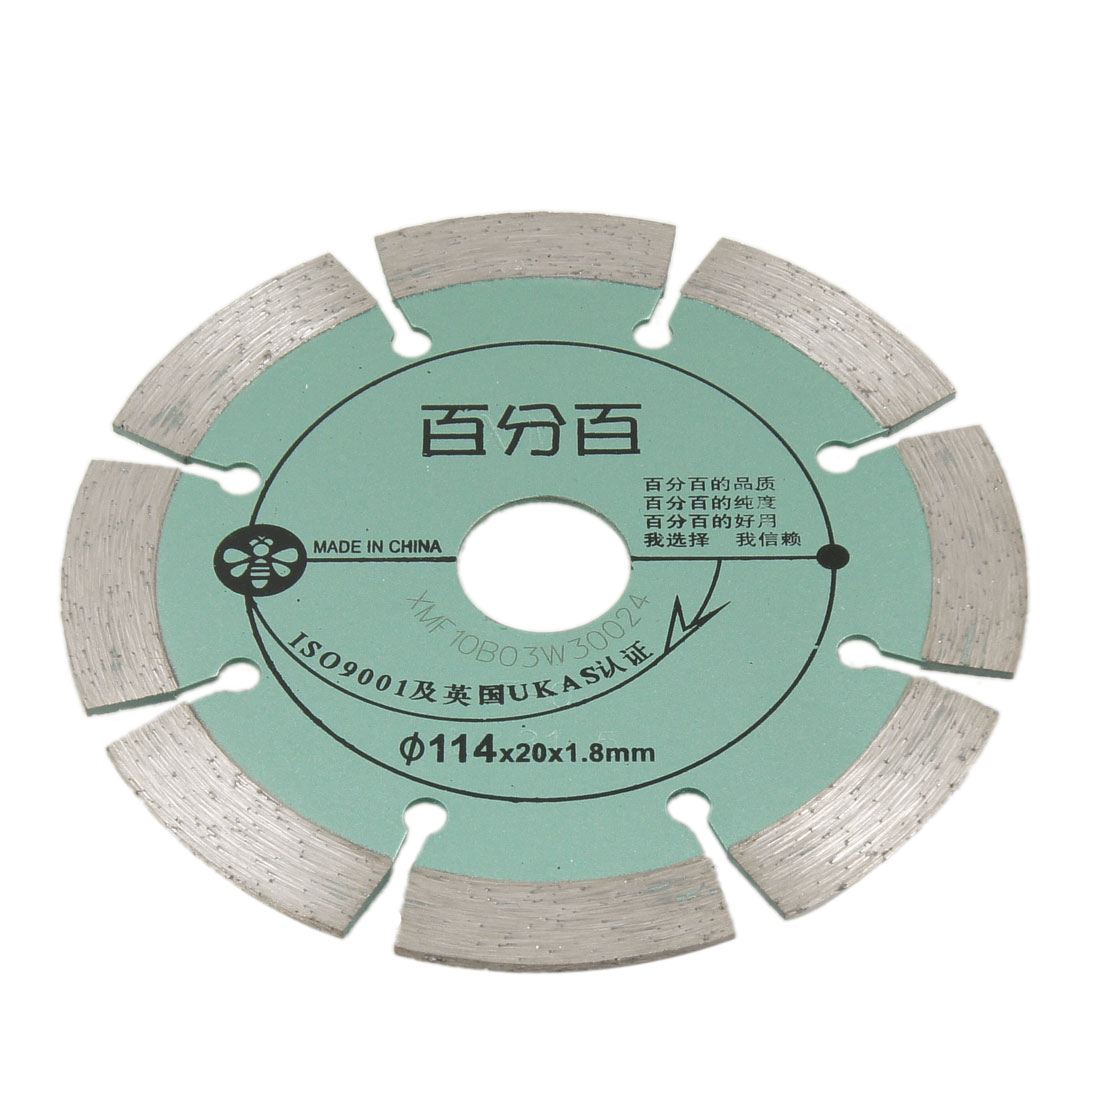 Concrete Tile Cutting Wheel 8-Segment Disc Vane 110mm x 20mm x 1.8mm